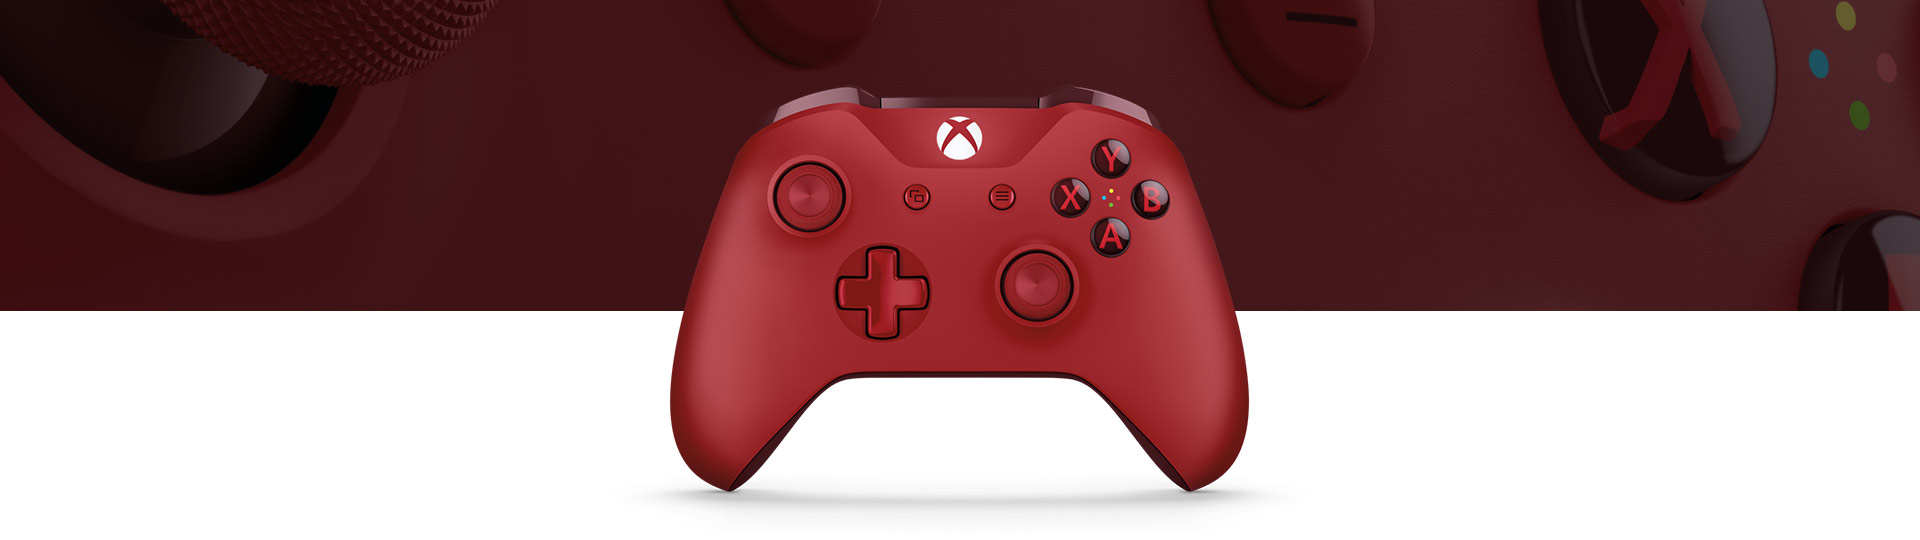 Xbox One Wireless Controller – Red